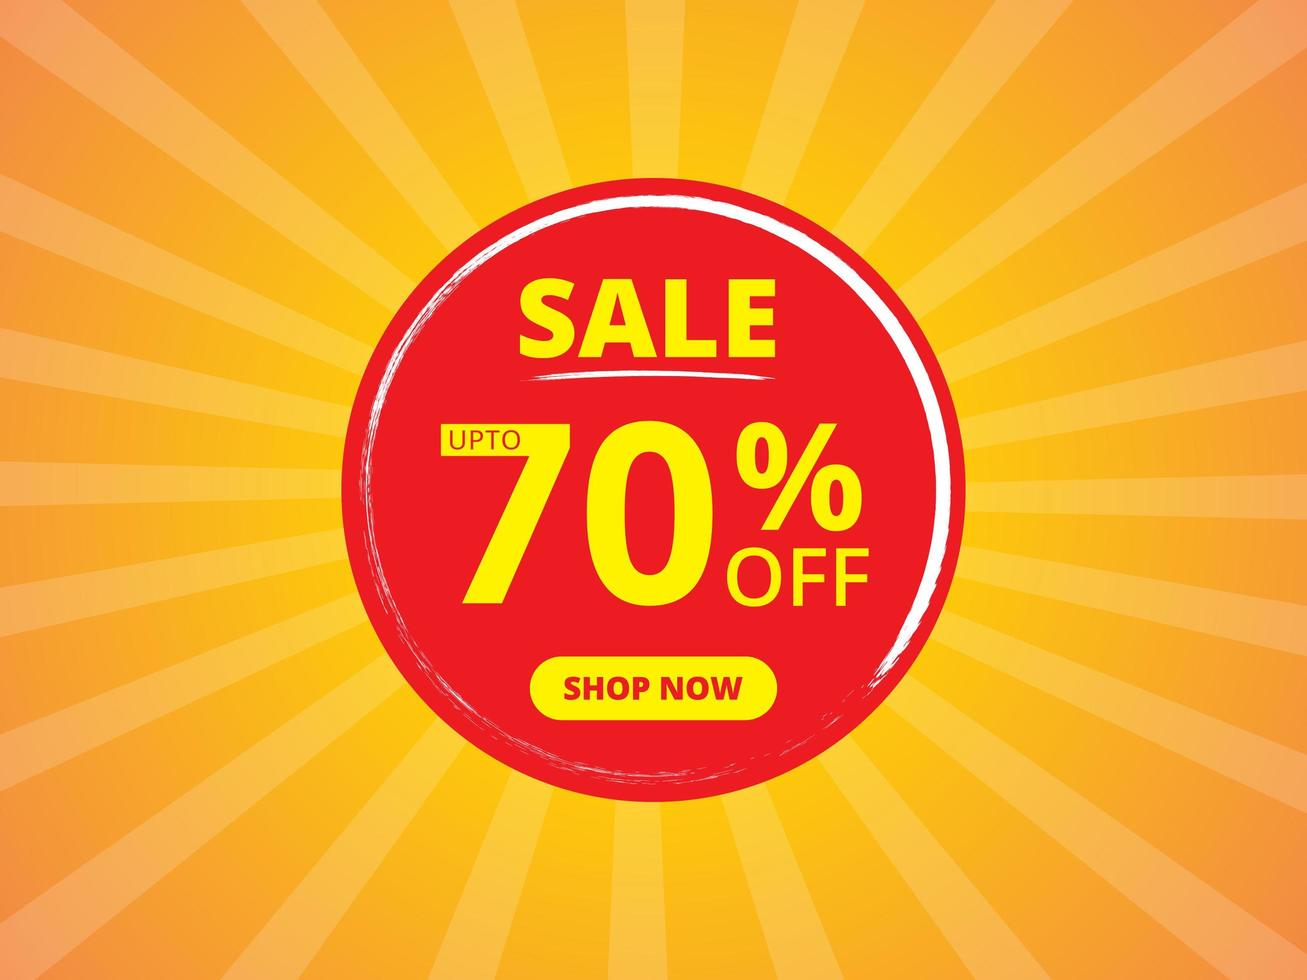 Sale Banner Template Design in Yellow and Red Colors vector